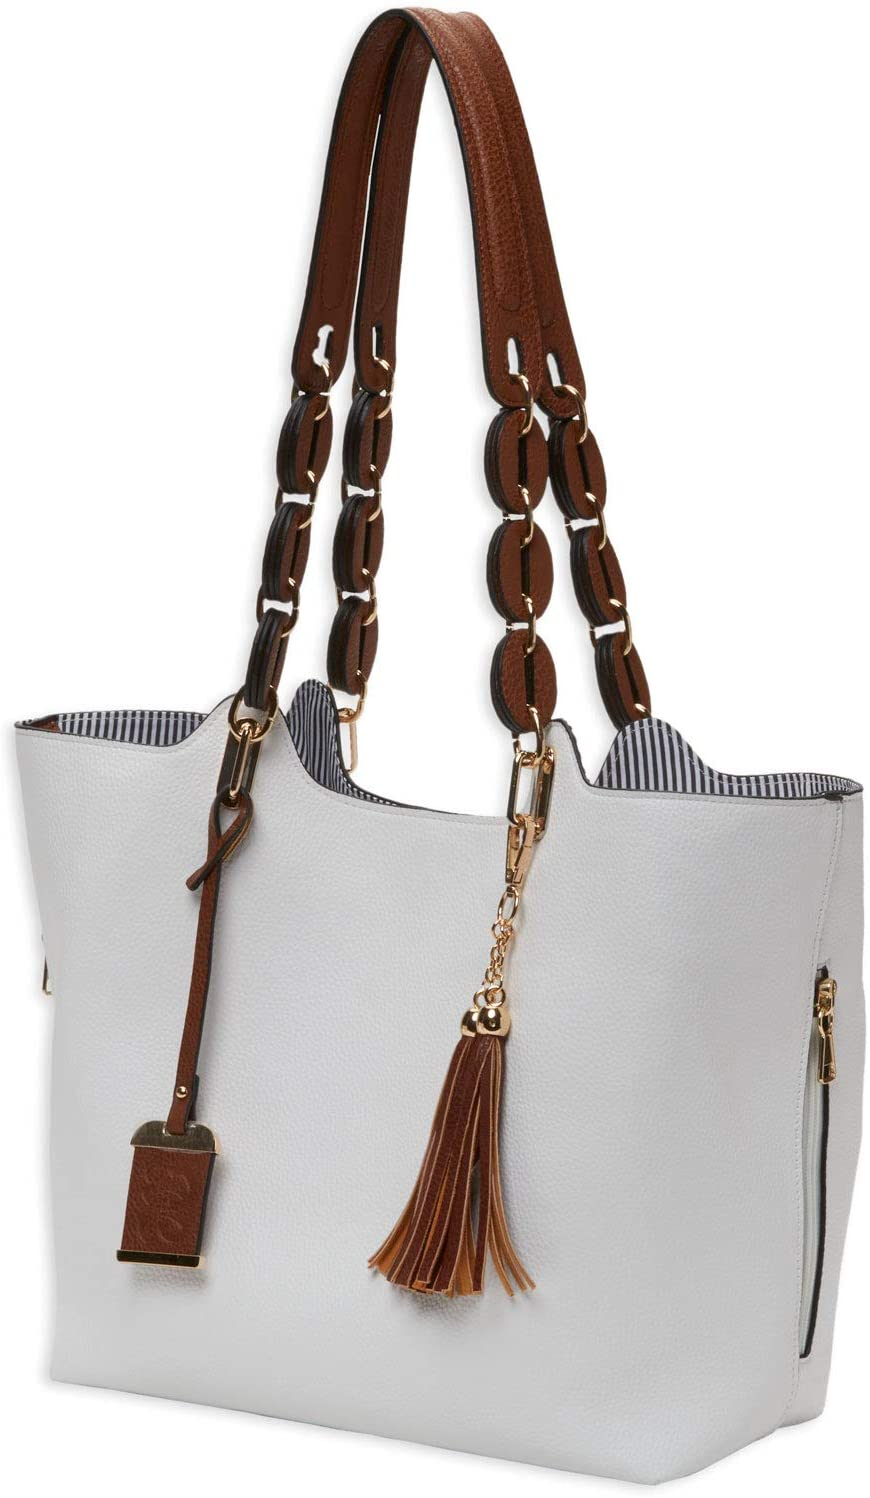 Bulldog Cases BDP-055 Braided Tote Style w Holster Albuquerque Be super welcome Mall Purse - White